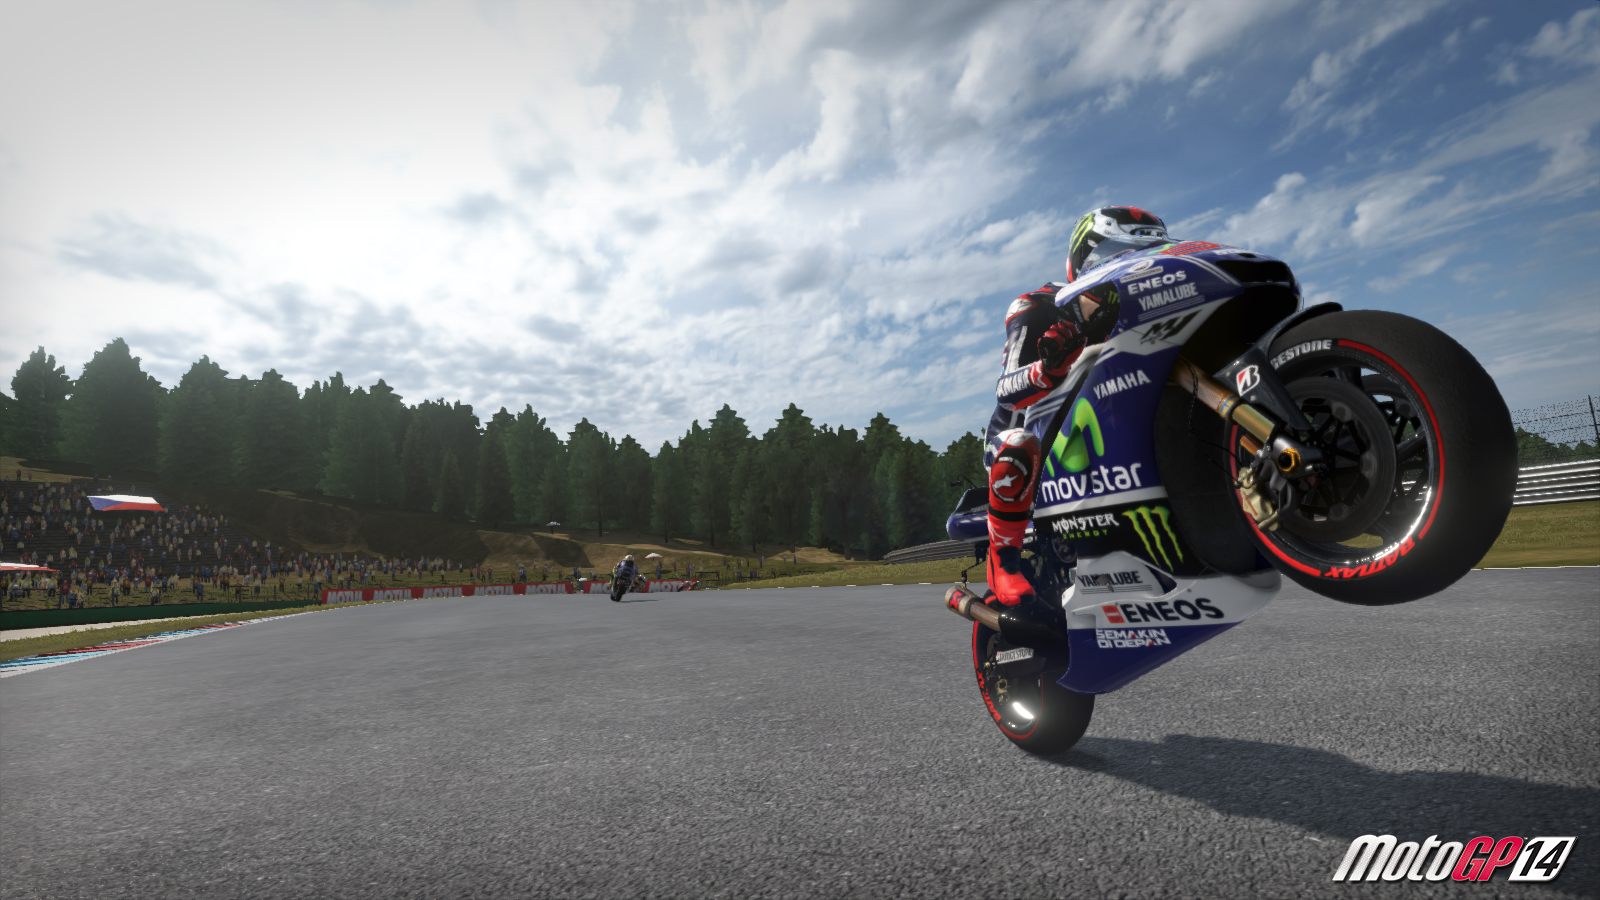 Motogp 14 Ps4 Review Goes Better Than It Shows Usgamer